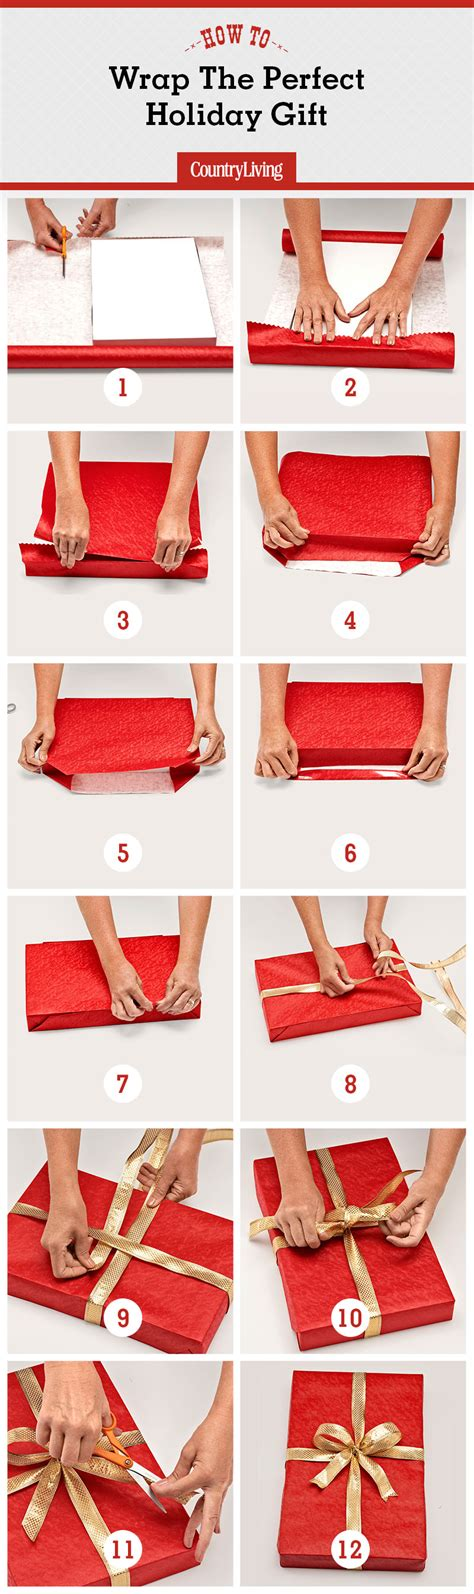 how to wrap presents how to wrap a gift wrapping a present step by step